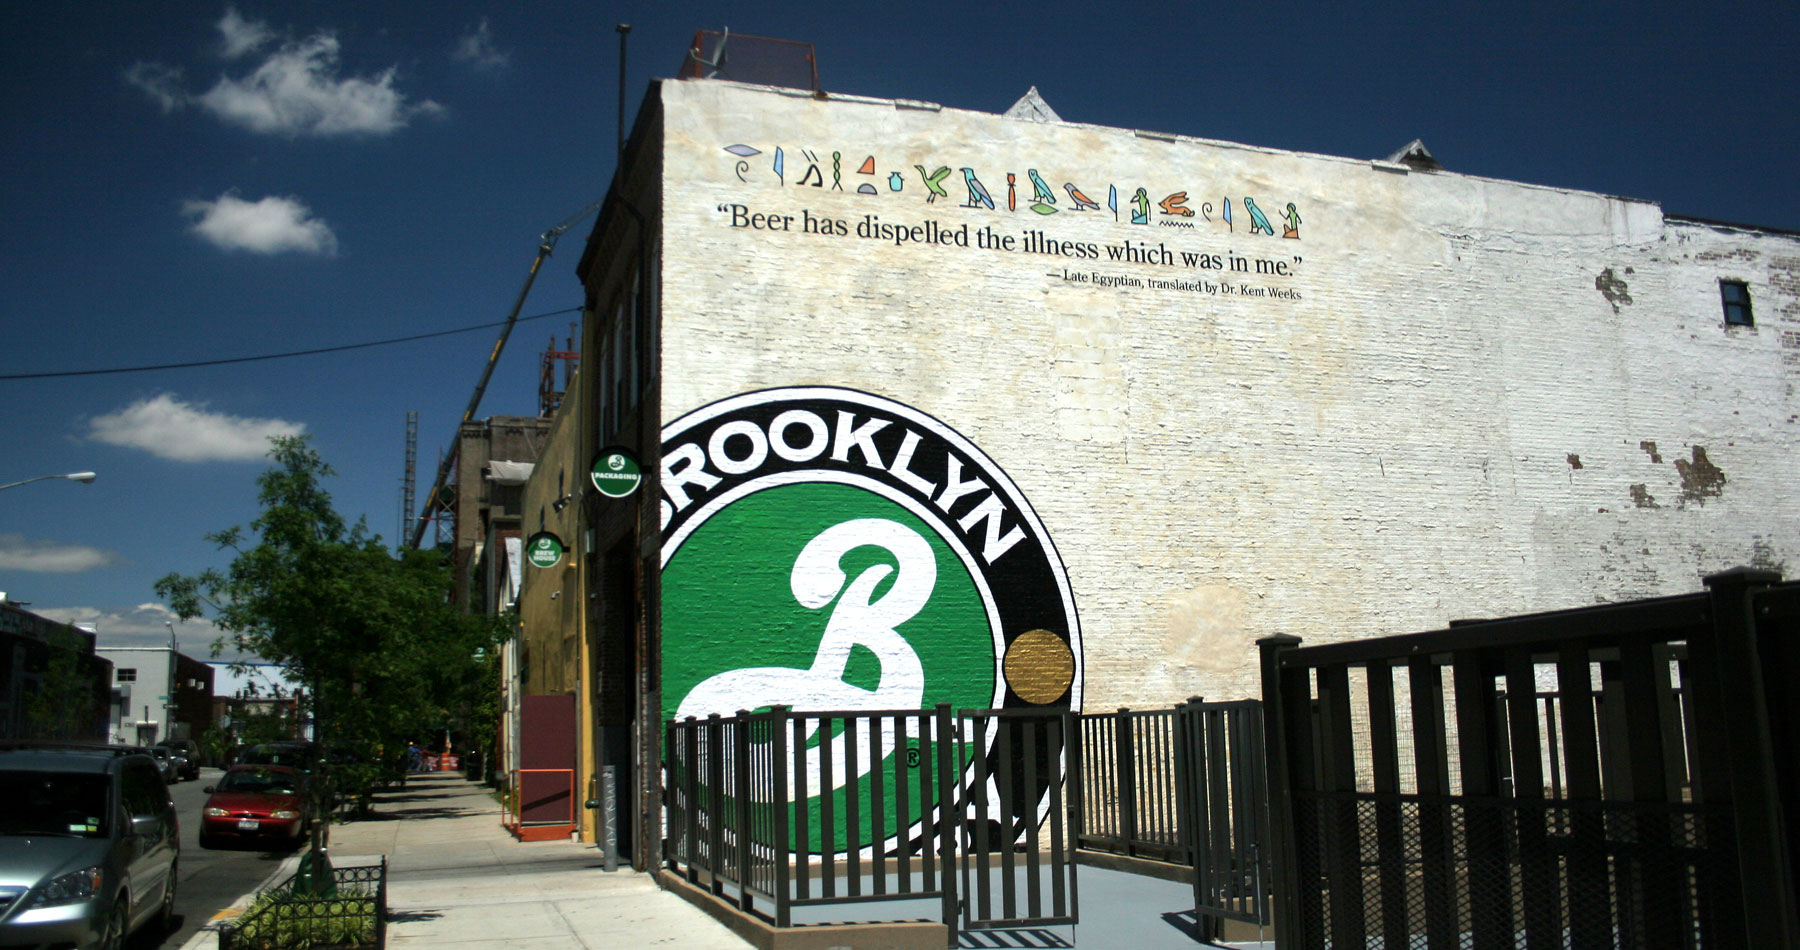 photo: brooklynbrewery.com